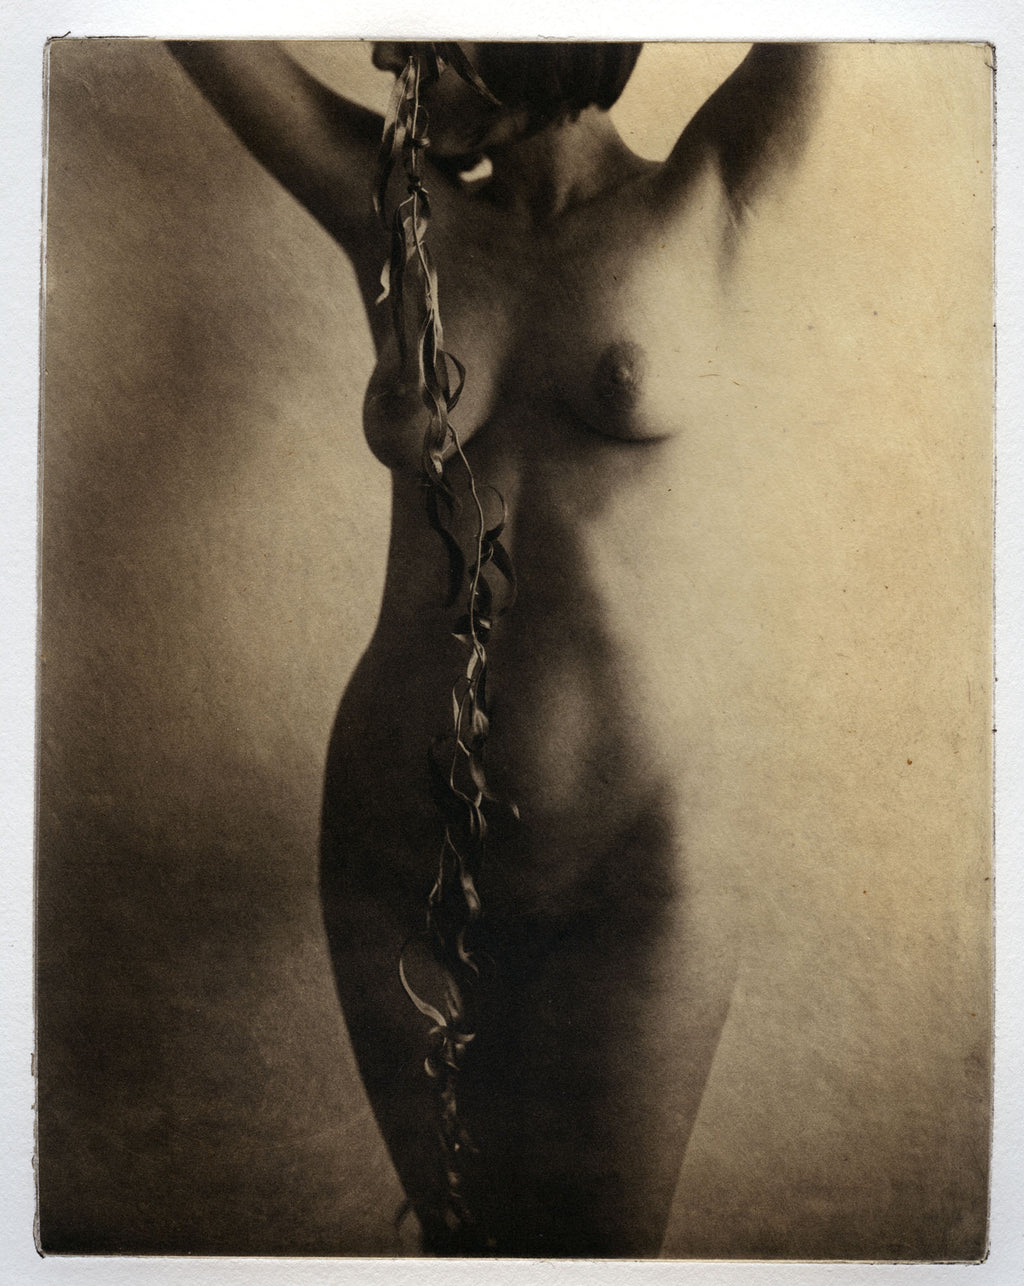 The vine   - Polymer photogravure print - Edition 2021